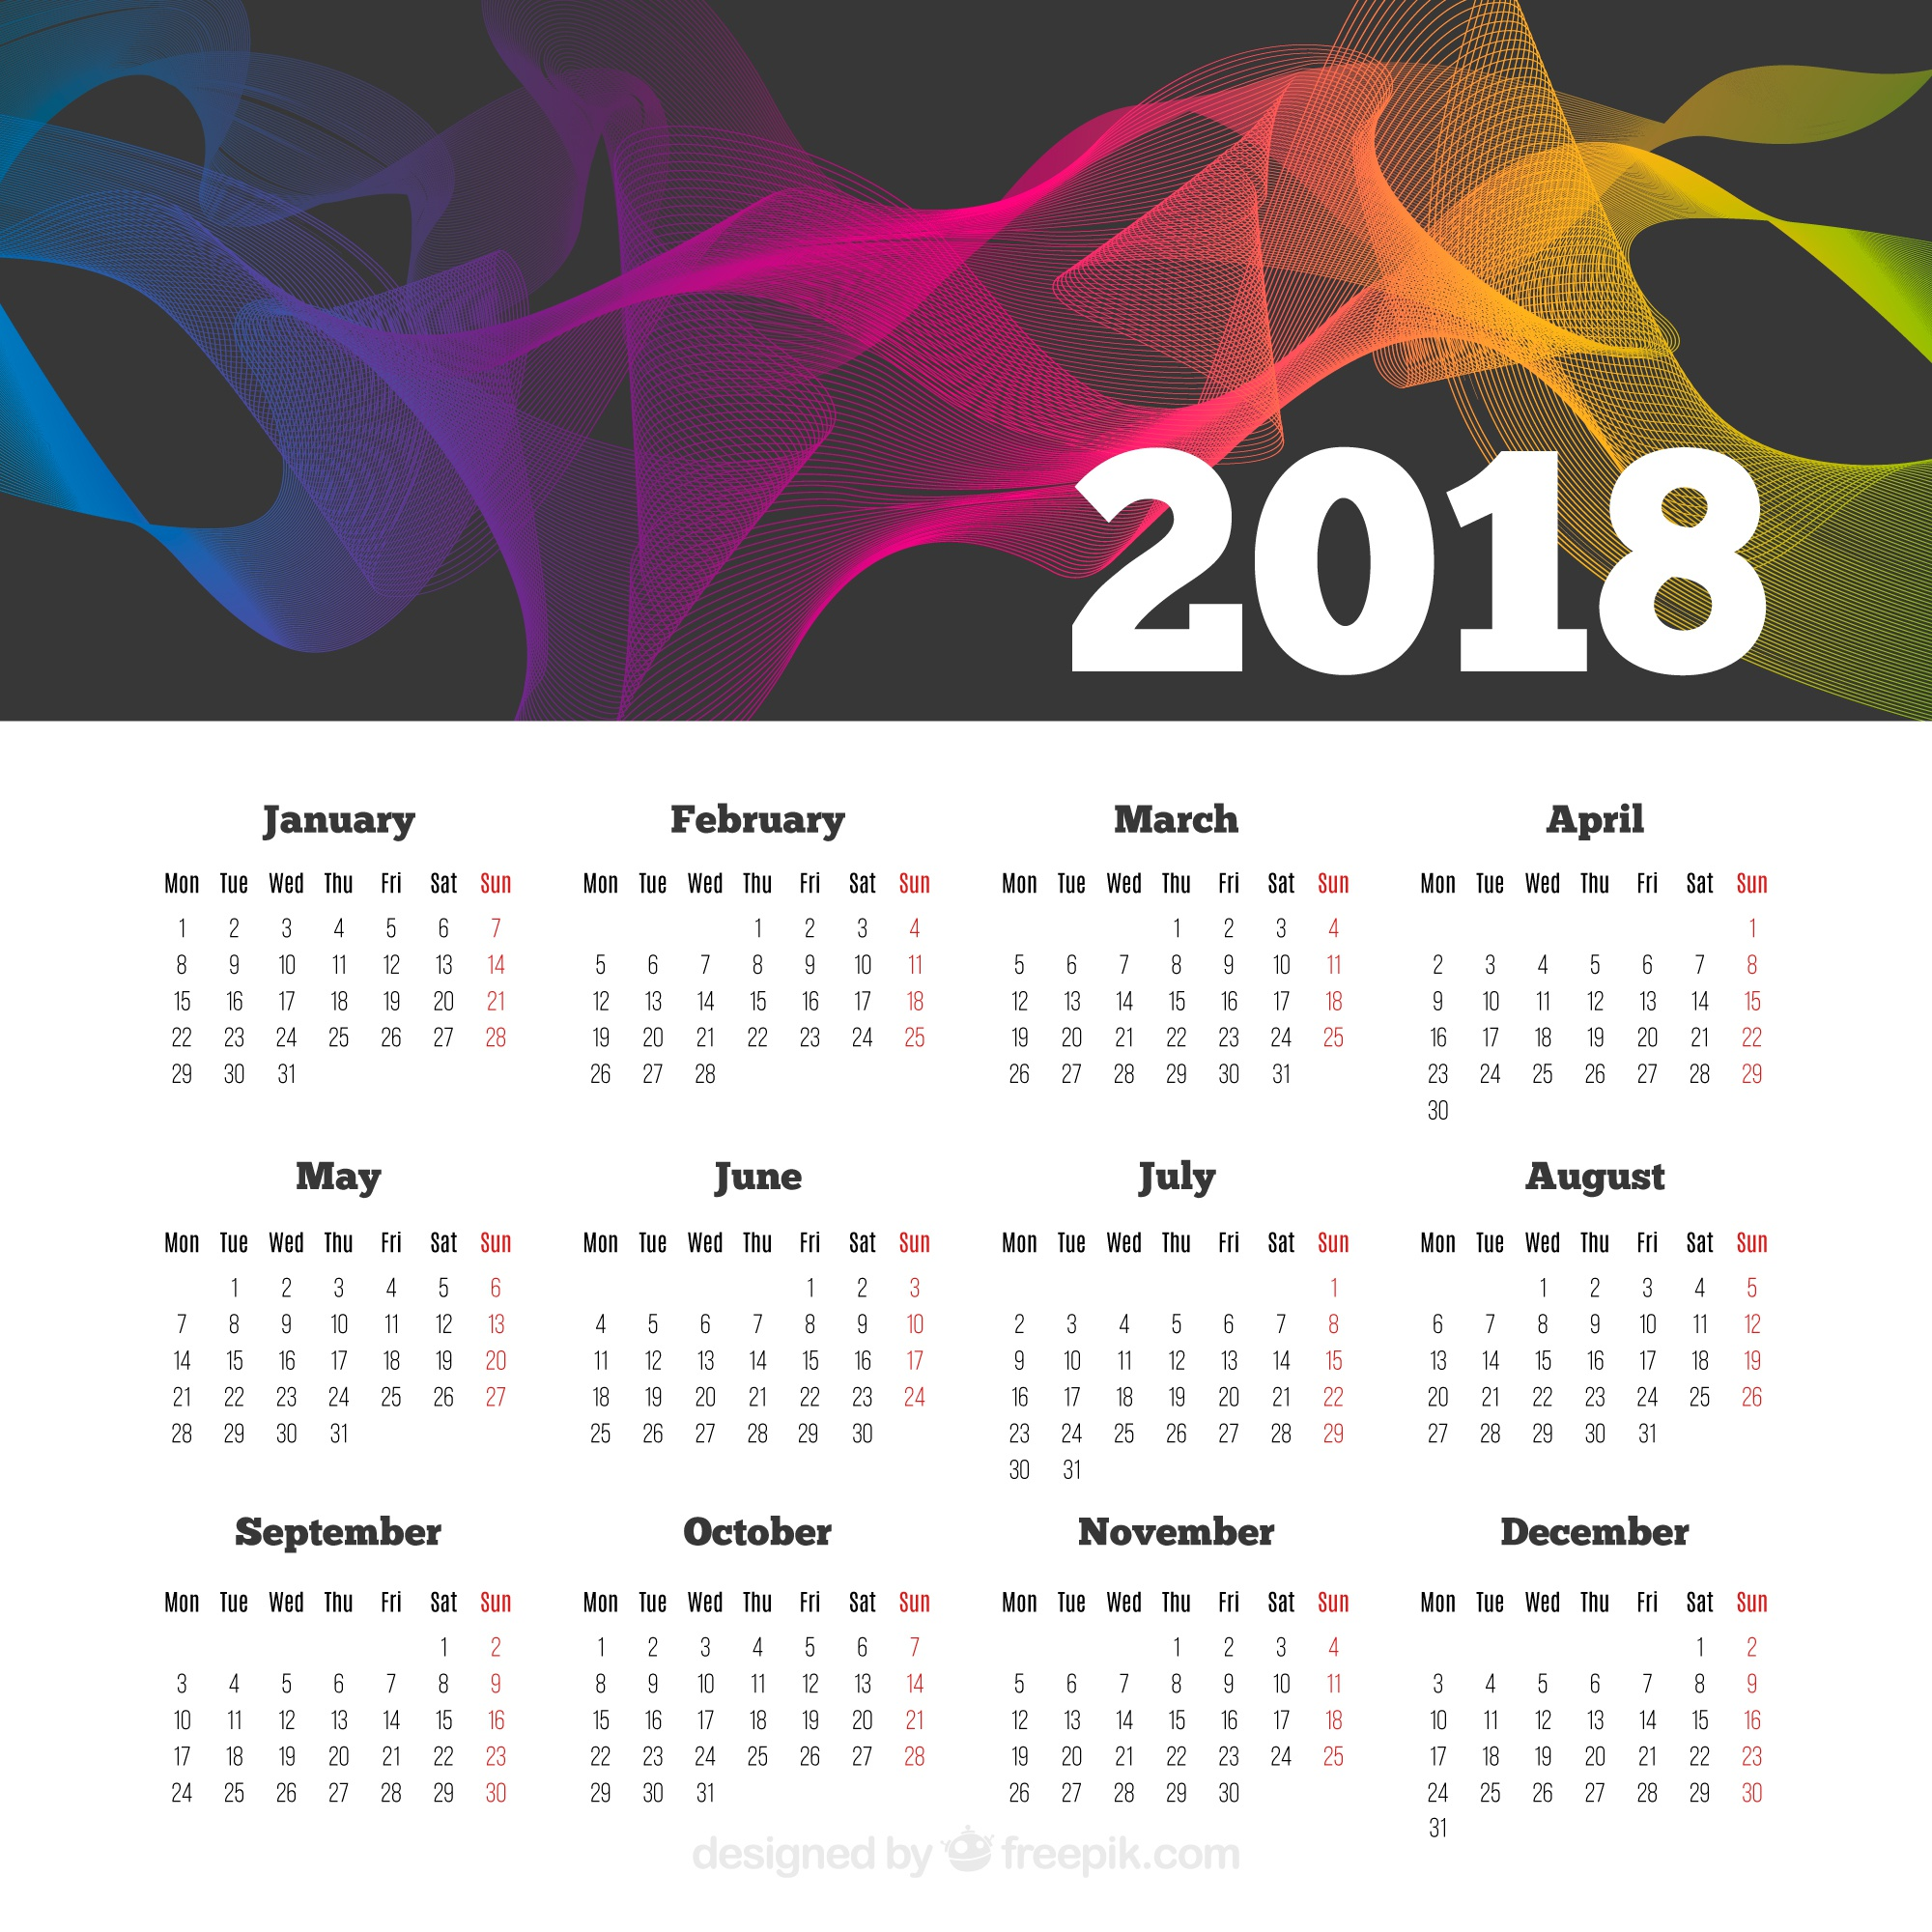 Abstract 2018 calendar with colored shapes